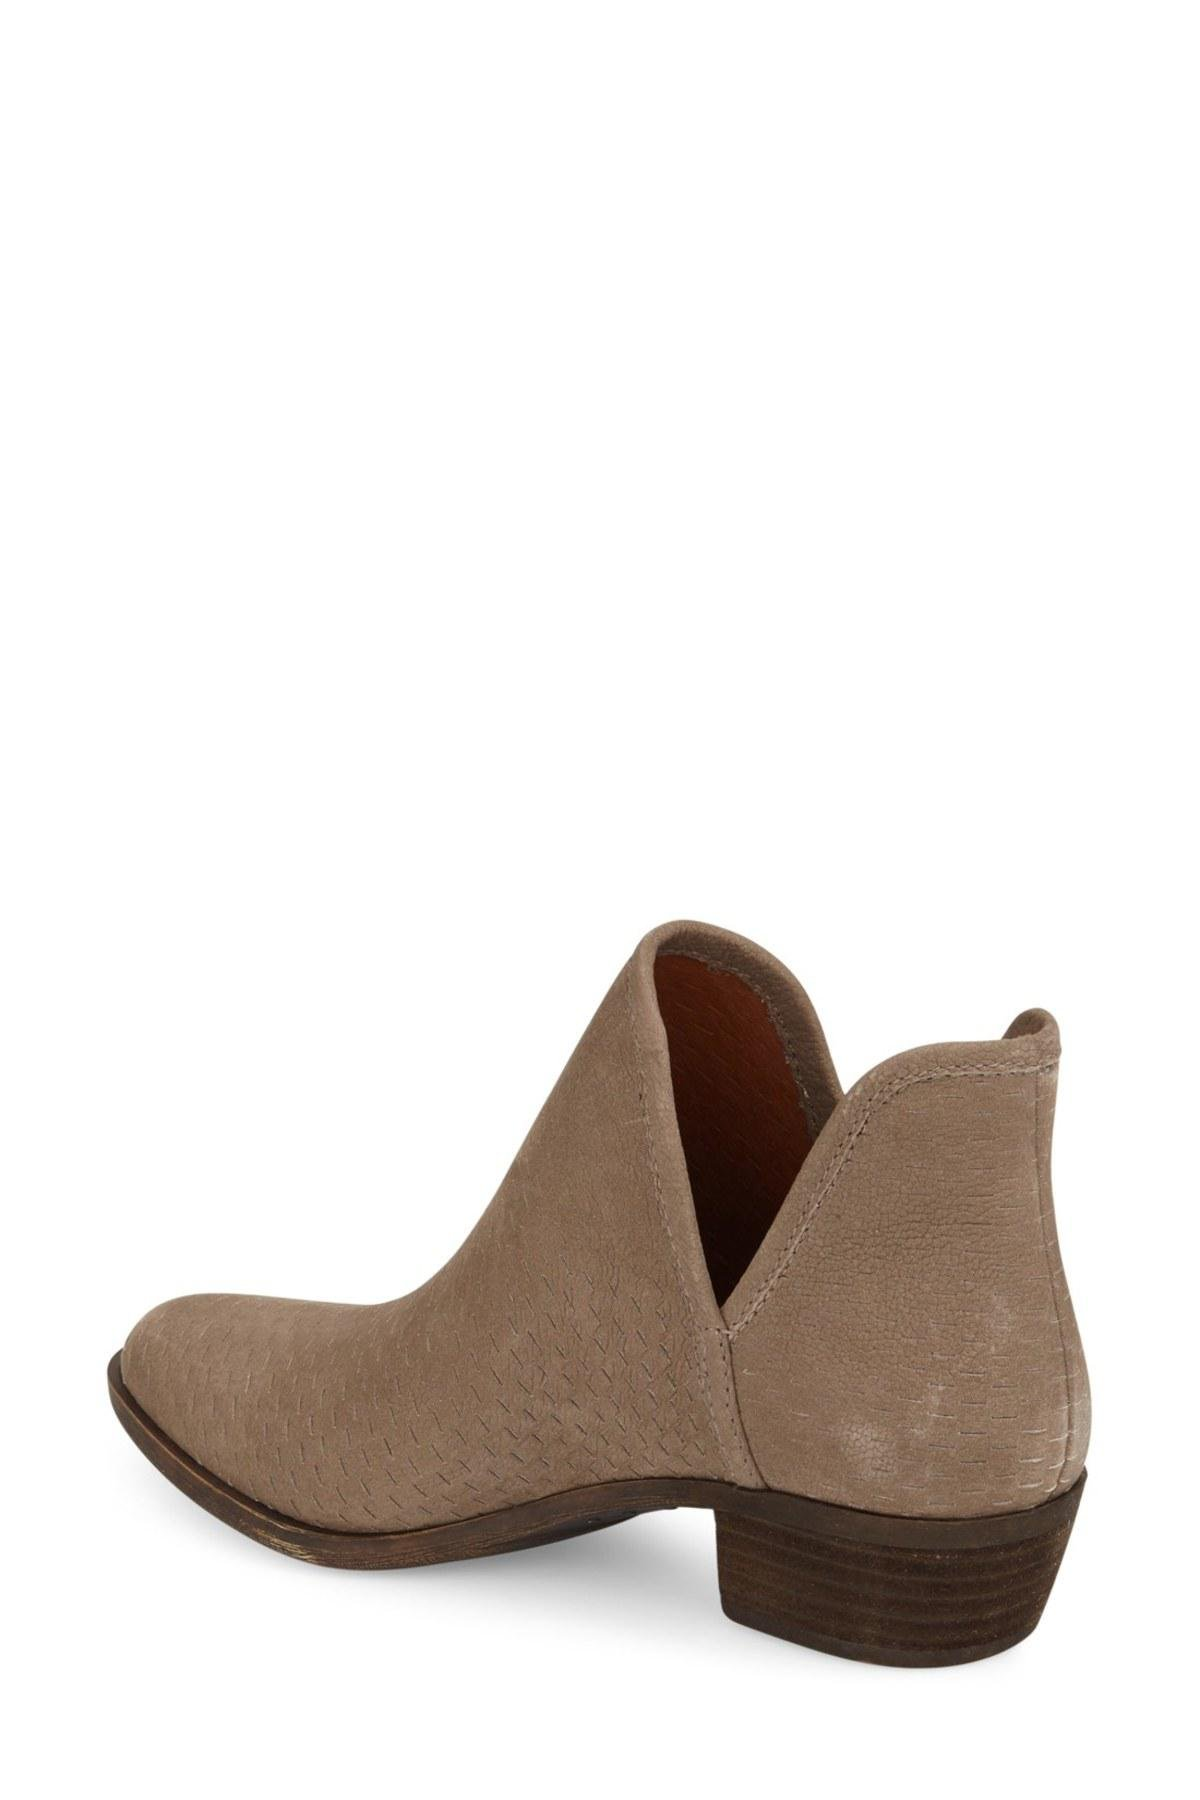 Lucky Brand Bashina Blush Stacked Heel Pointed Toe Leather Bootie